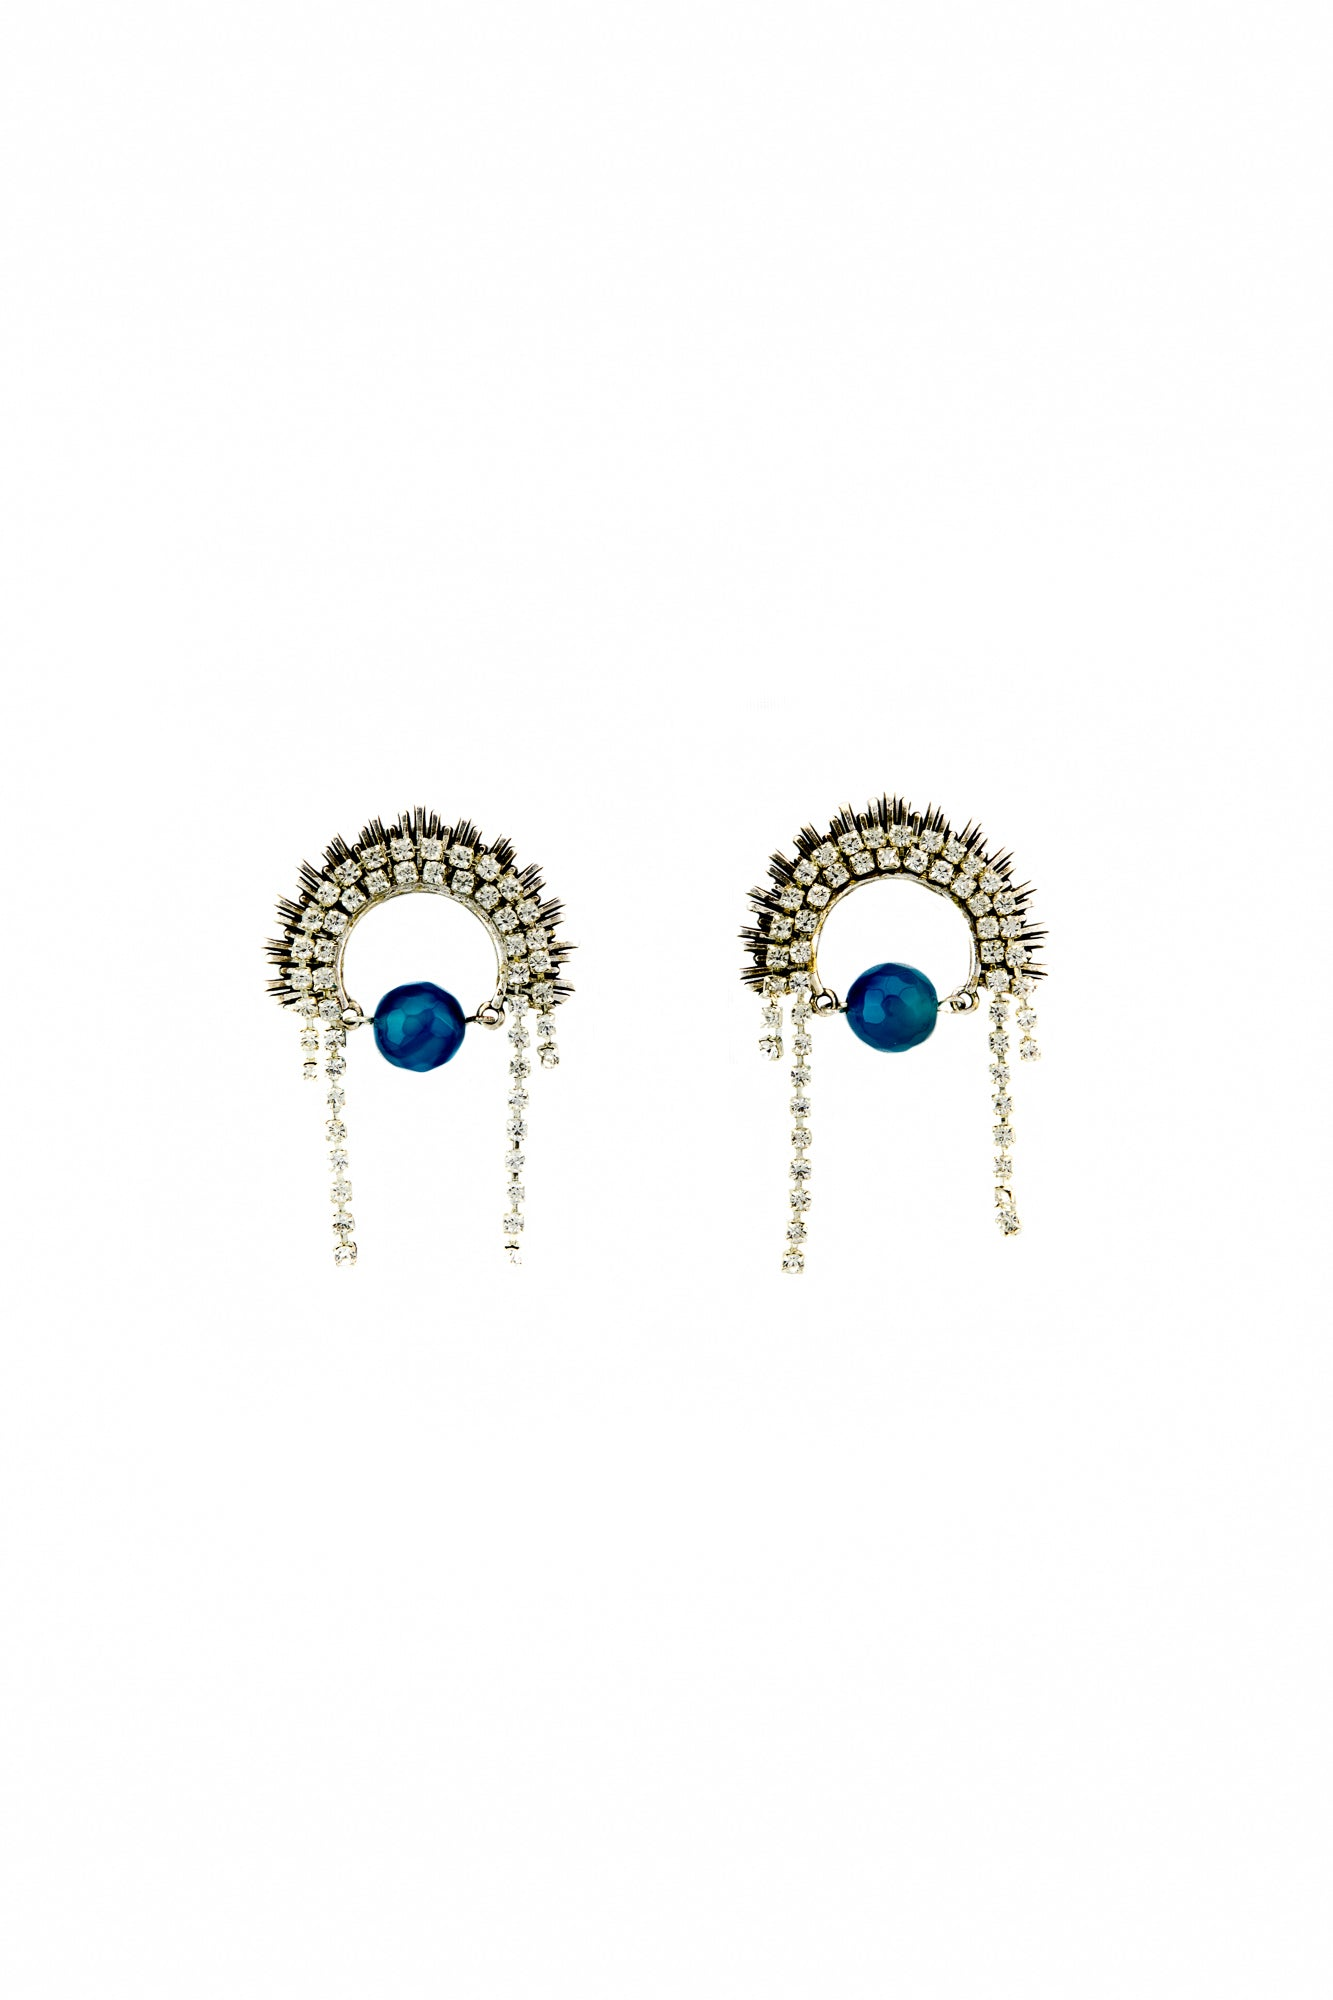 Rhinestone tiara earrings